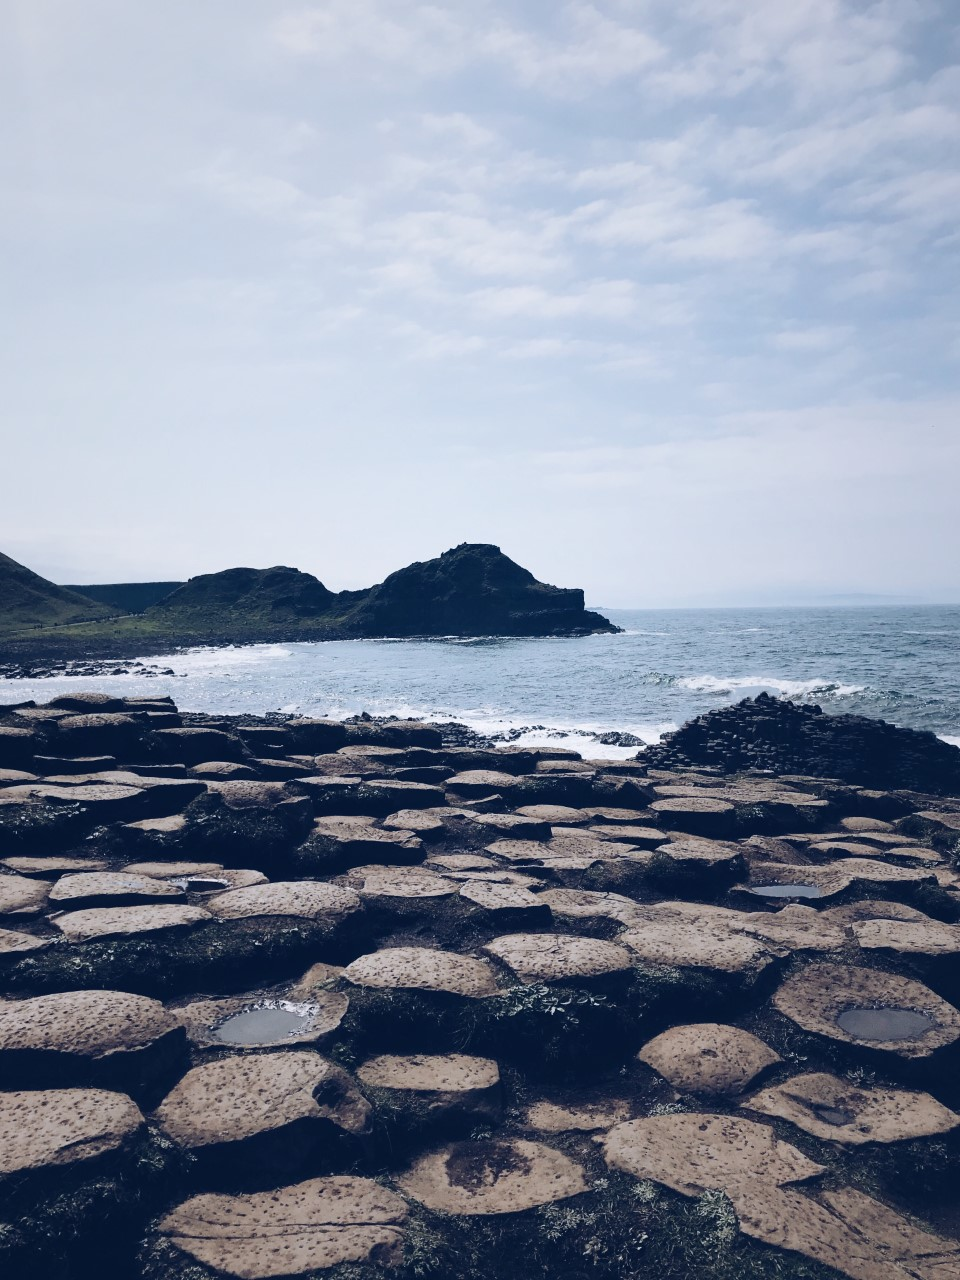 The Giant's Causeway, Northern Ireland